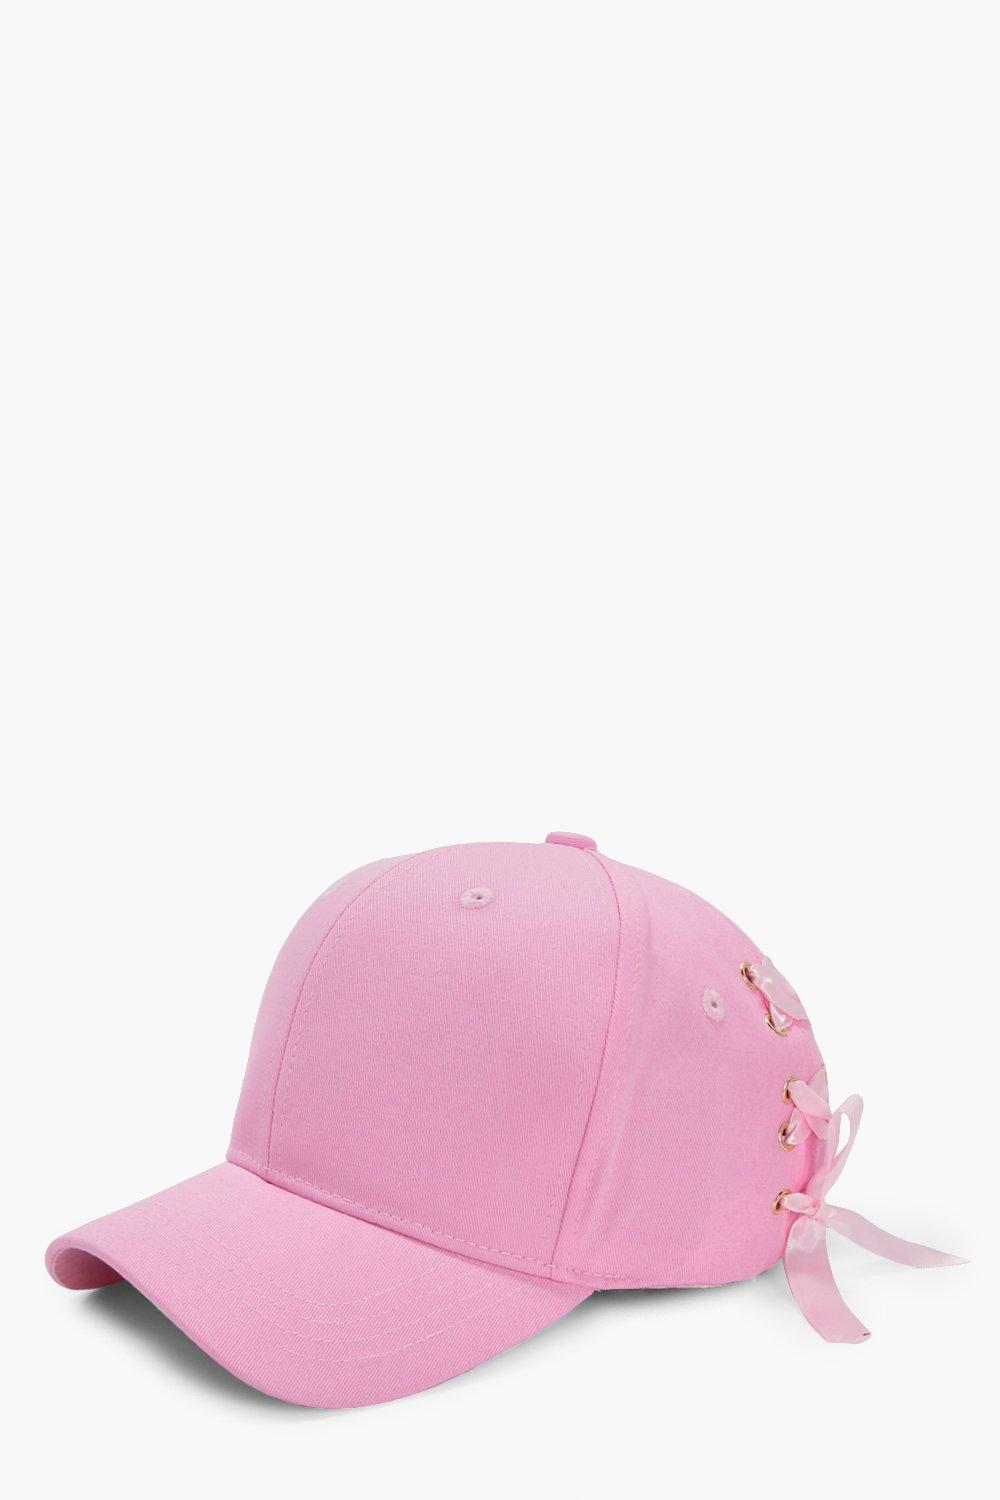 Lace Up Corset Baseball Cap - pink - Jenna Lace Up